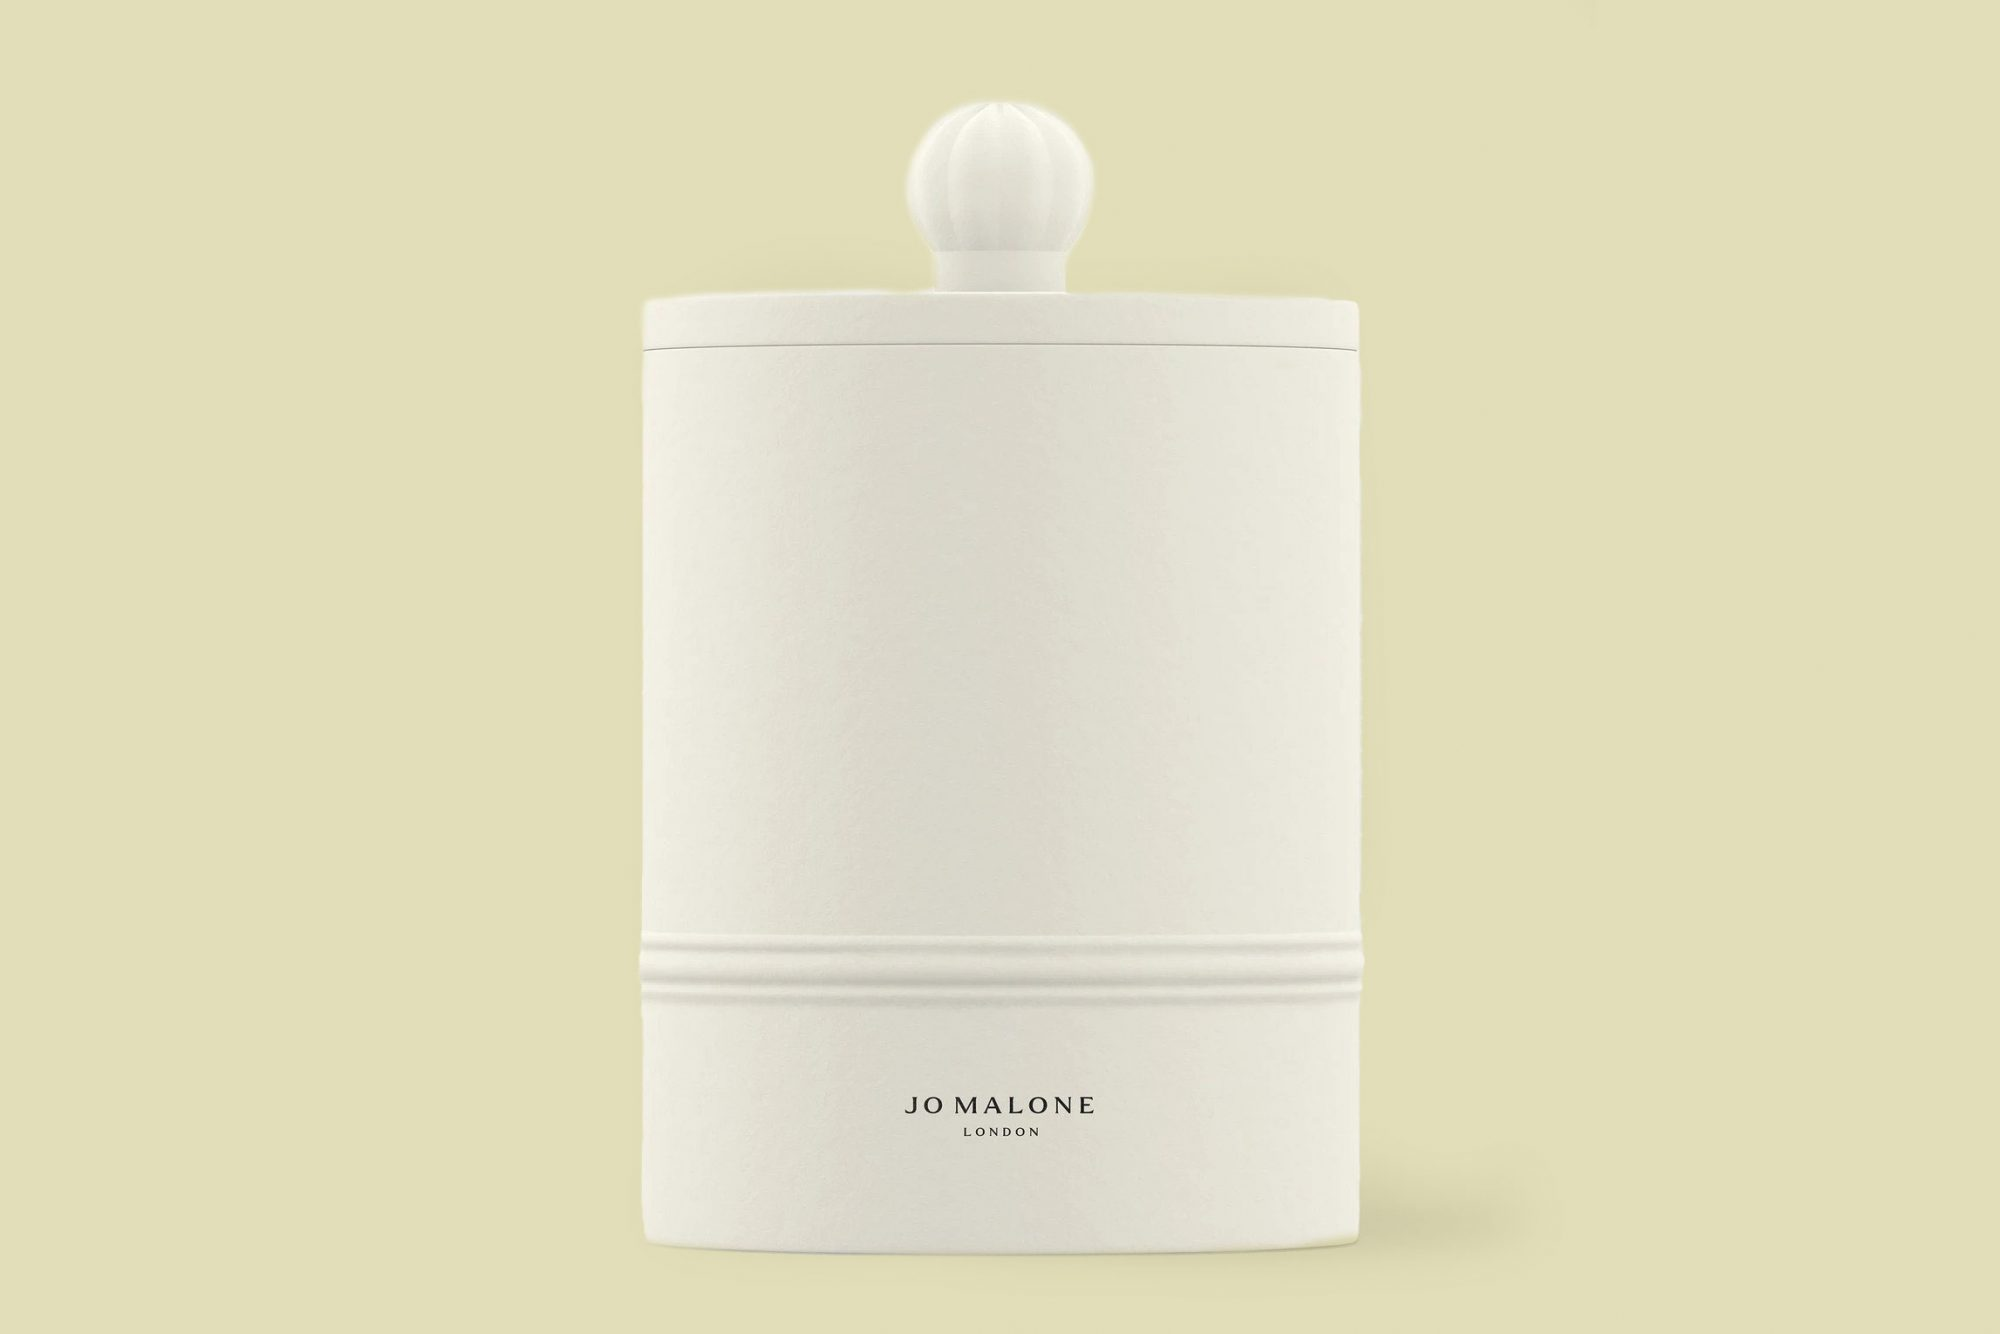 Jo Malone London Glowing Embers Scented Candle